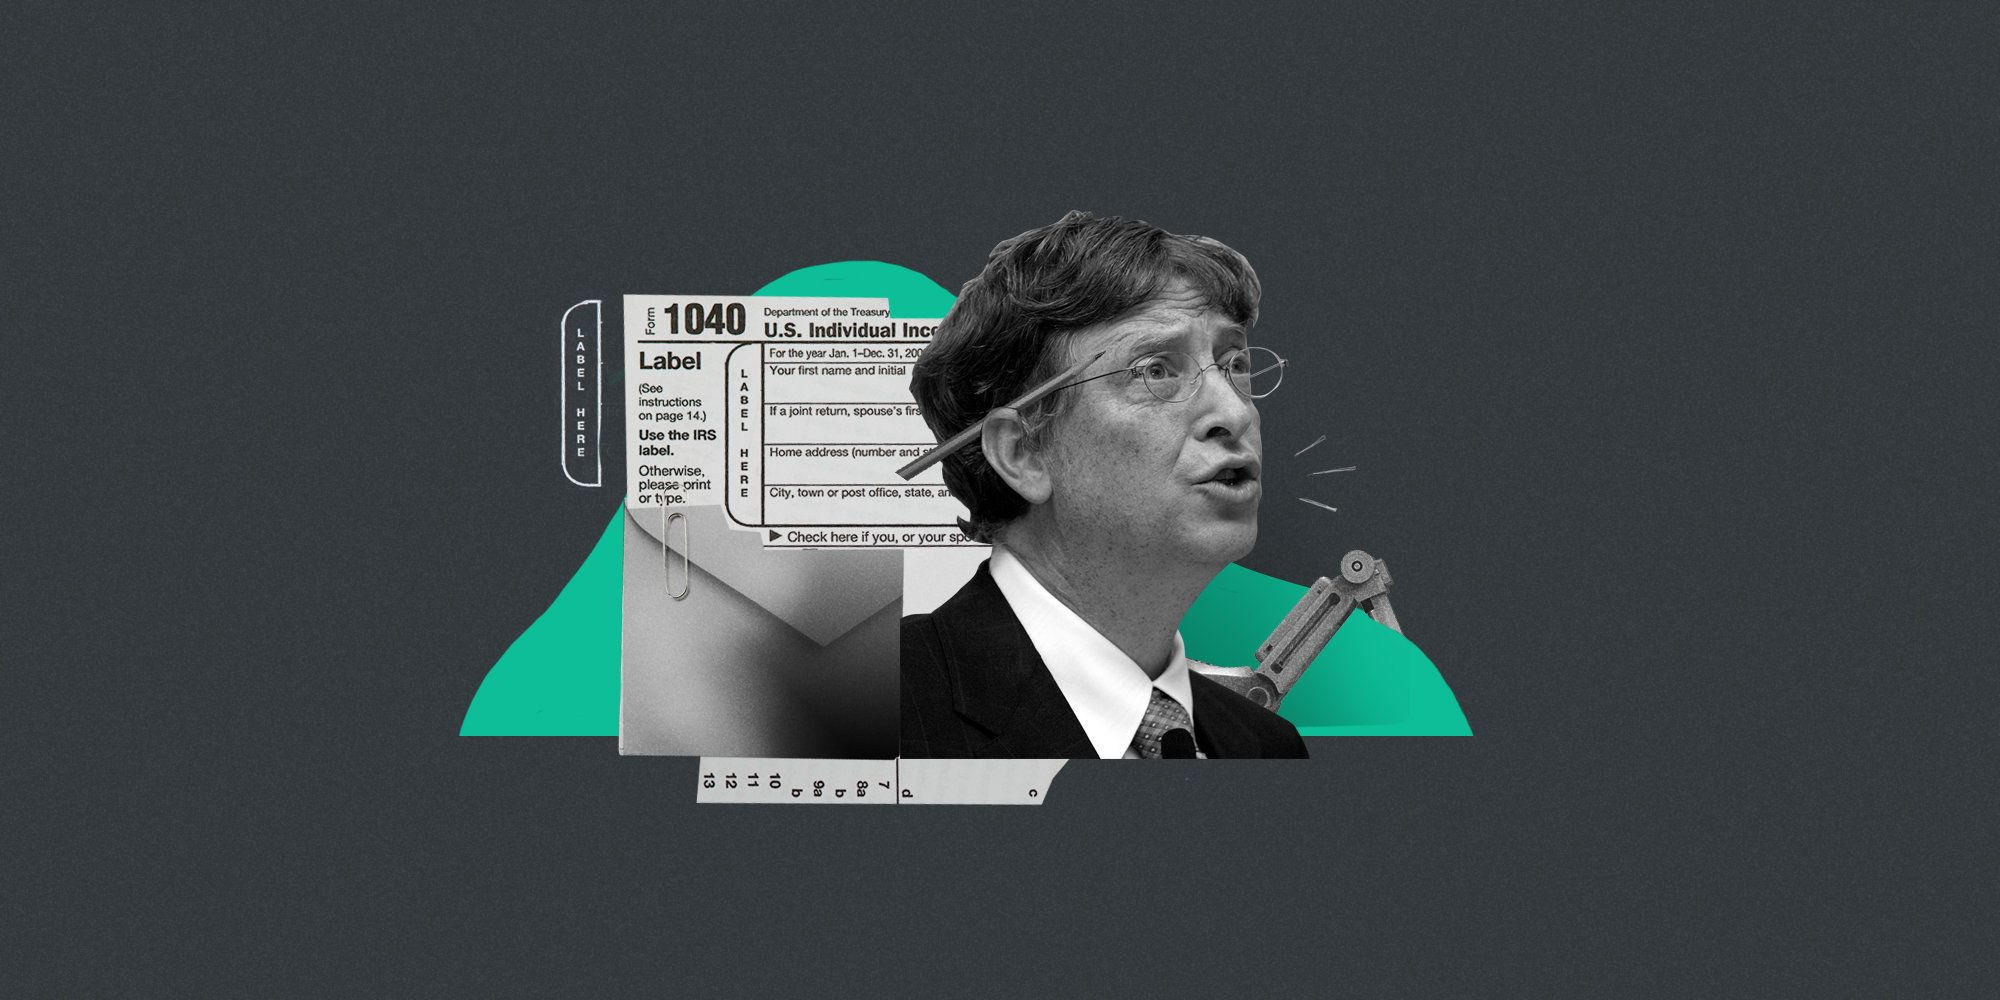 Bill Gates Robot Tax